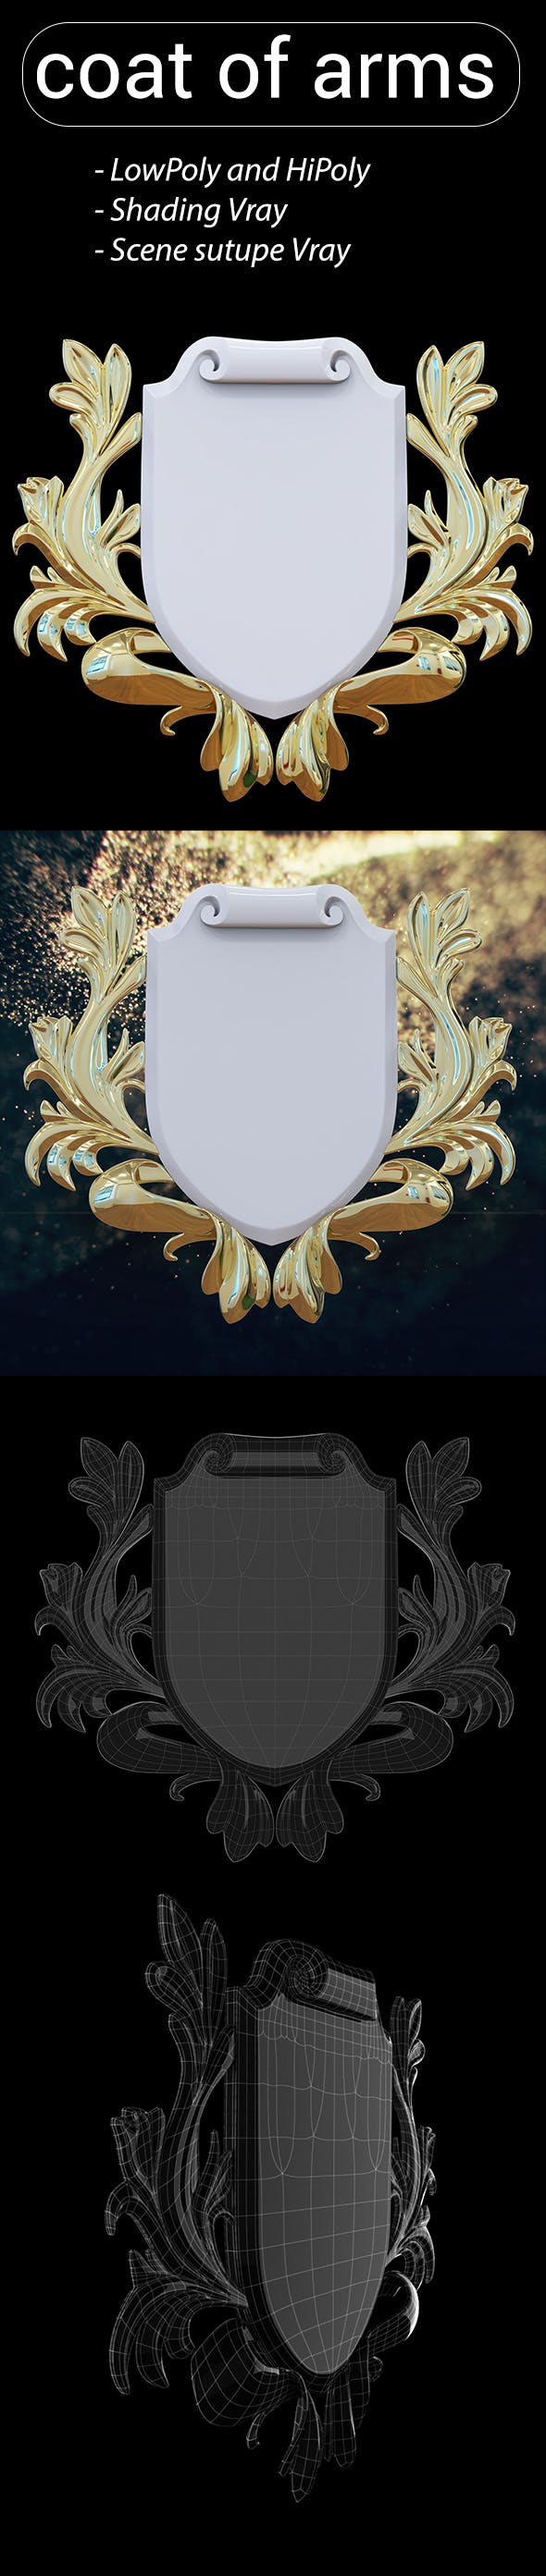 coat of arms - 3DOcean Item for Sale